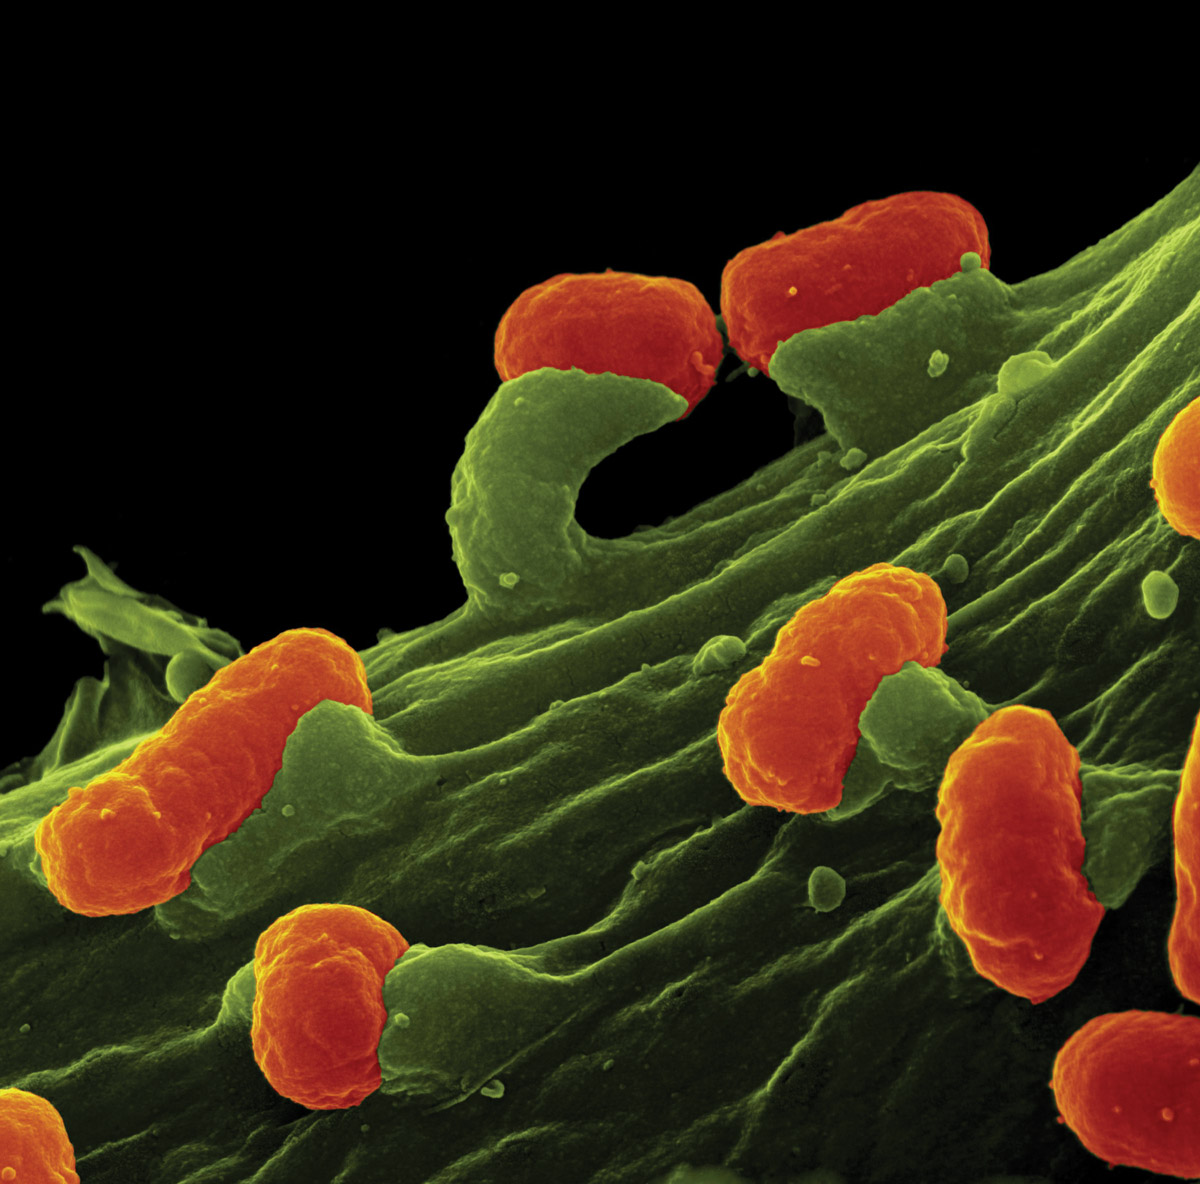 A colored scanning electron micrograph shows how EPEC infection occurs when the E. coli bacteria (orange) inject proteins into the host cells (green), forming pedestals to which they can attach.